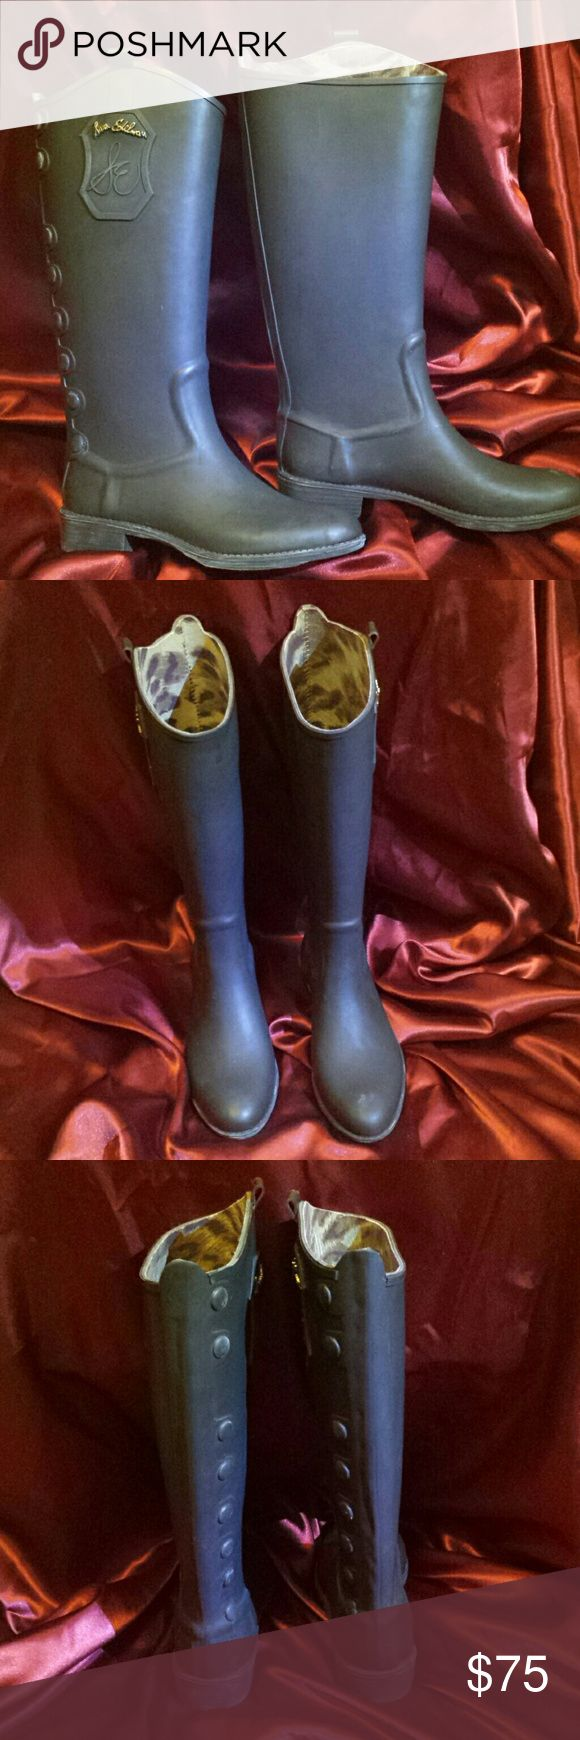 "Sam Edelman rain boots, sz7 Rubber rain boots, off blAck/grey black, 16"" shaft, size 7 Sam Edelman Shoes Winter & Rain Boots"